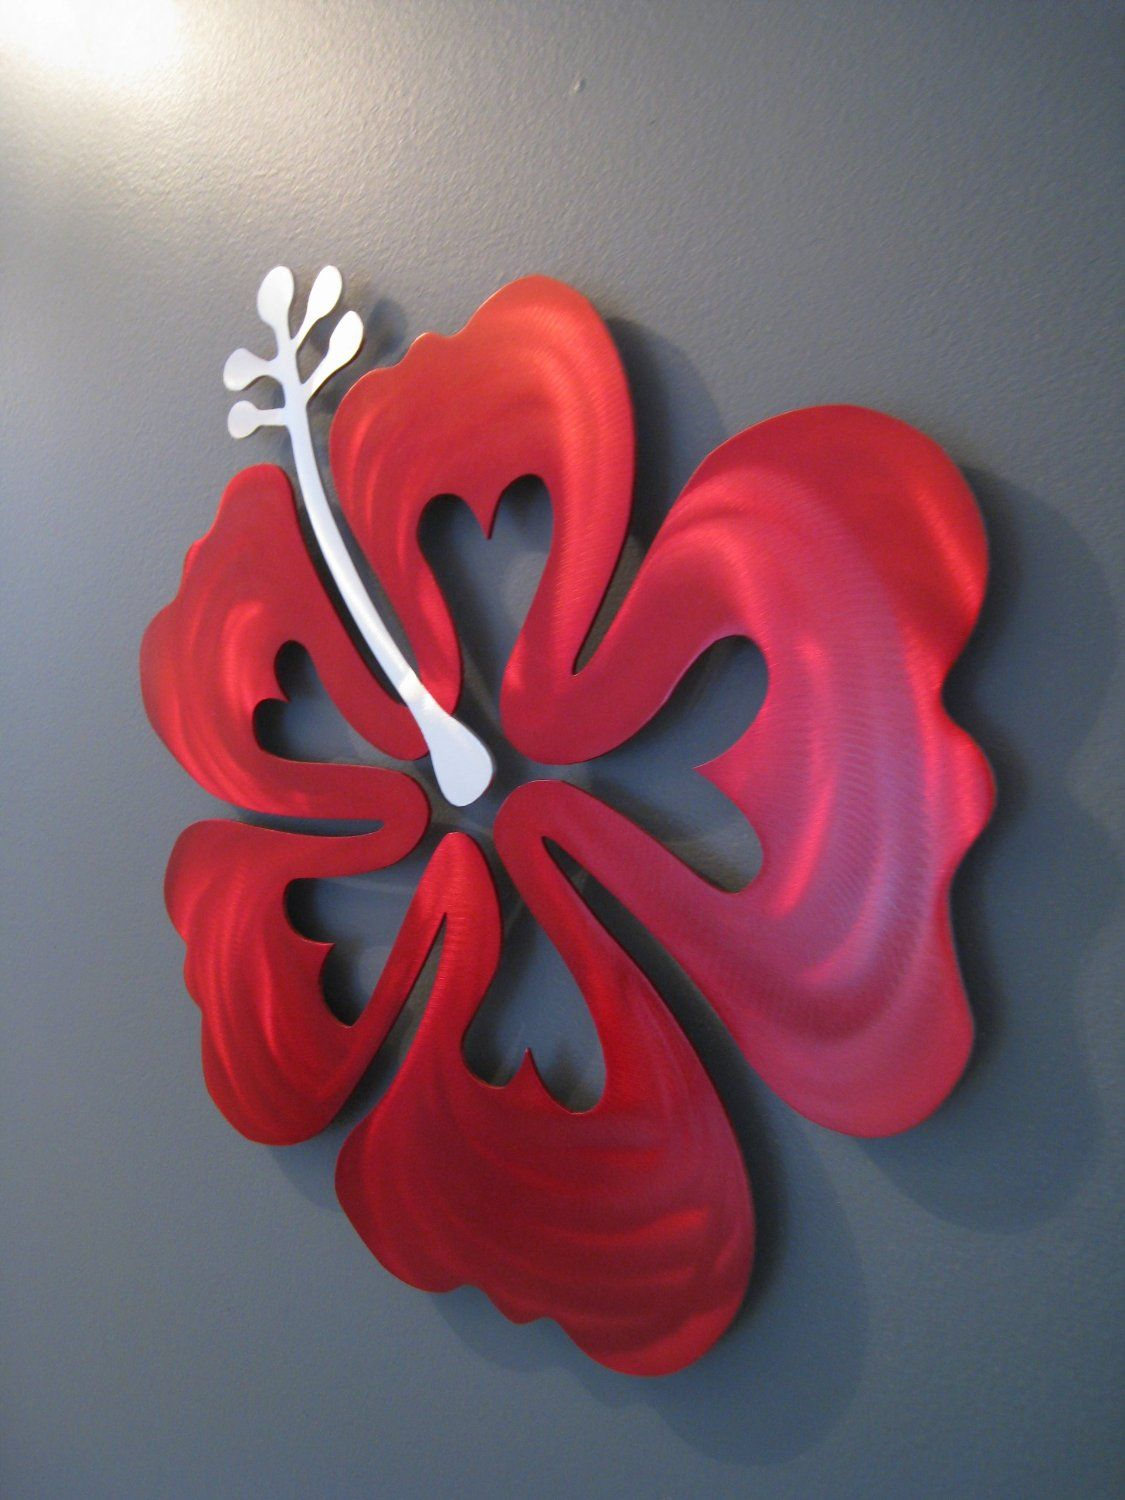 Hawaiian Home Decor Hibiscus Flower Hawaiian Home Decor Love This Hibiscus Flower Metal Wall Art